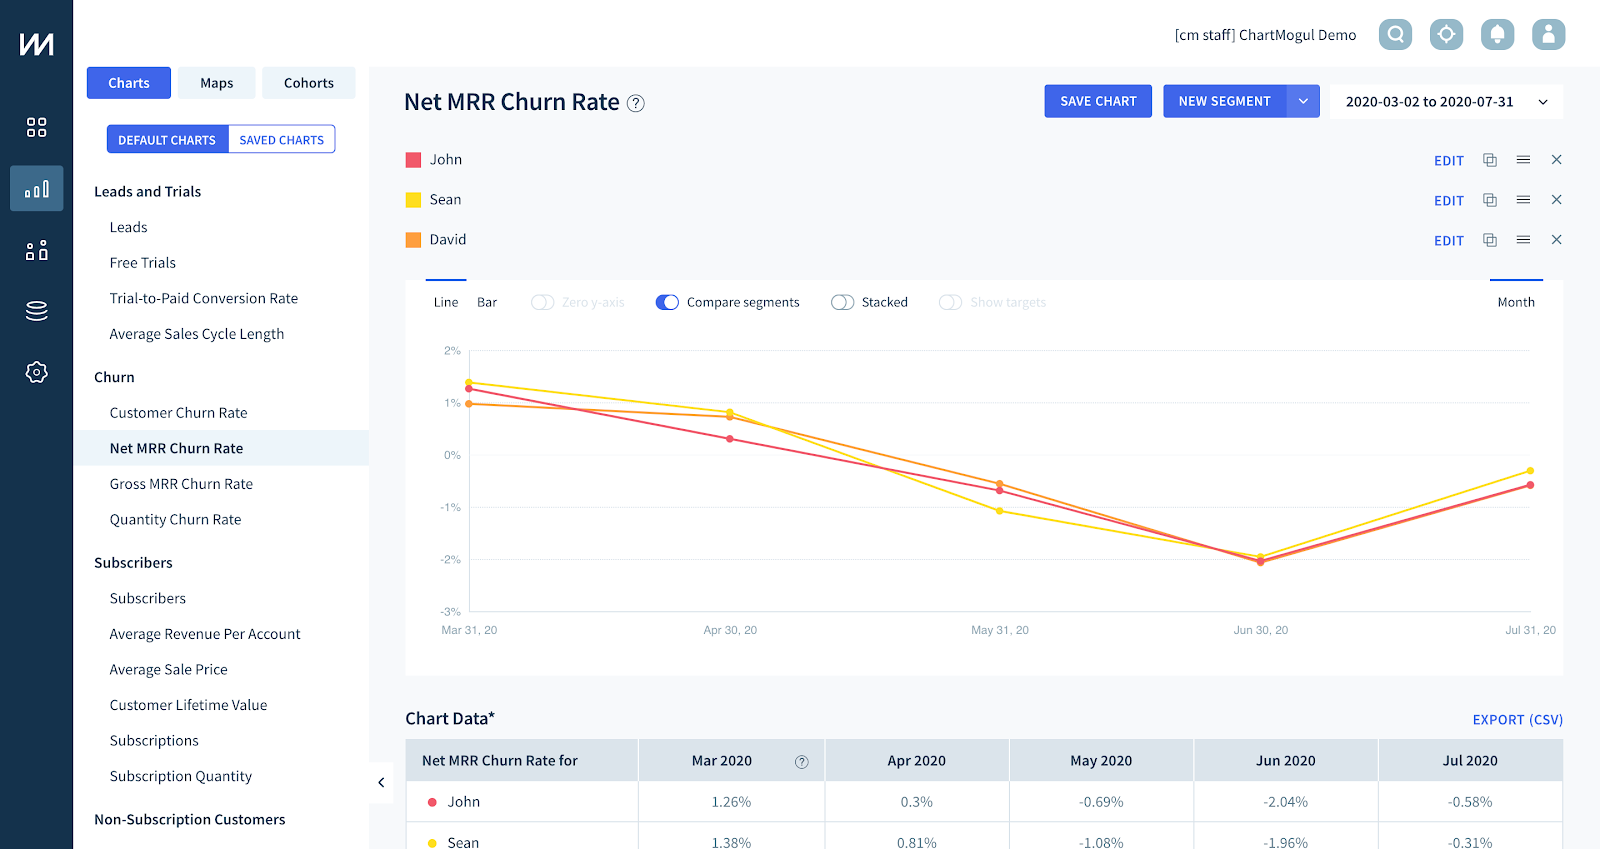 Comparing AEs inside ChartMogul